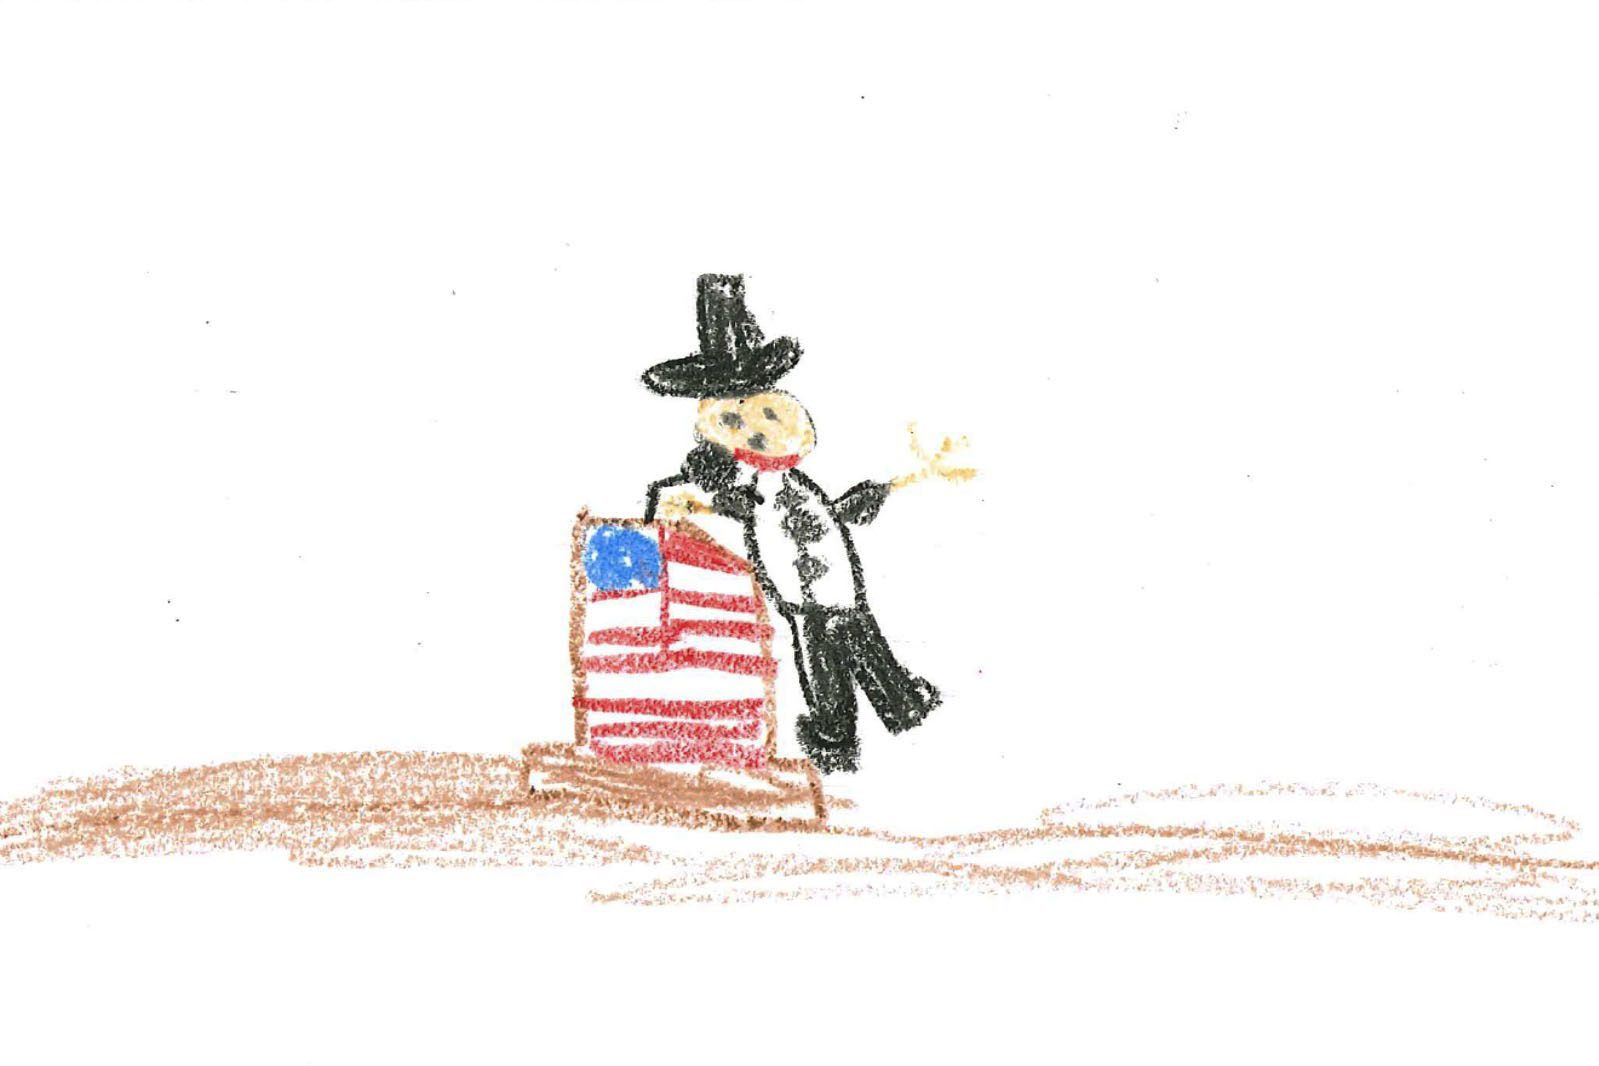 A child's drawing is pictured. The child drew what appears to be a male figure wearing a black outfit and black hat giving a speech at a podium. The podium is decorated with an American flag.